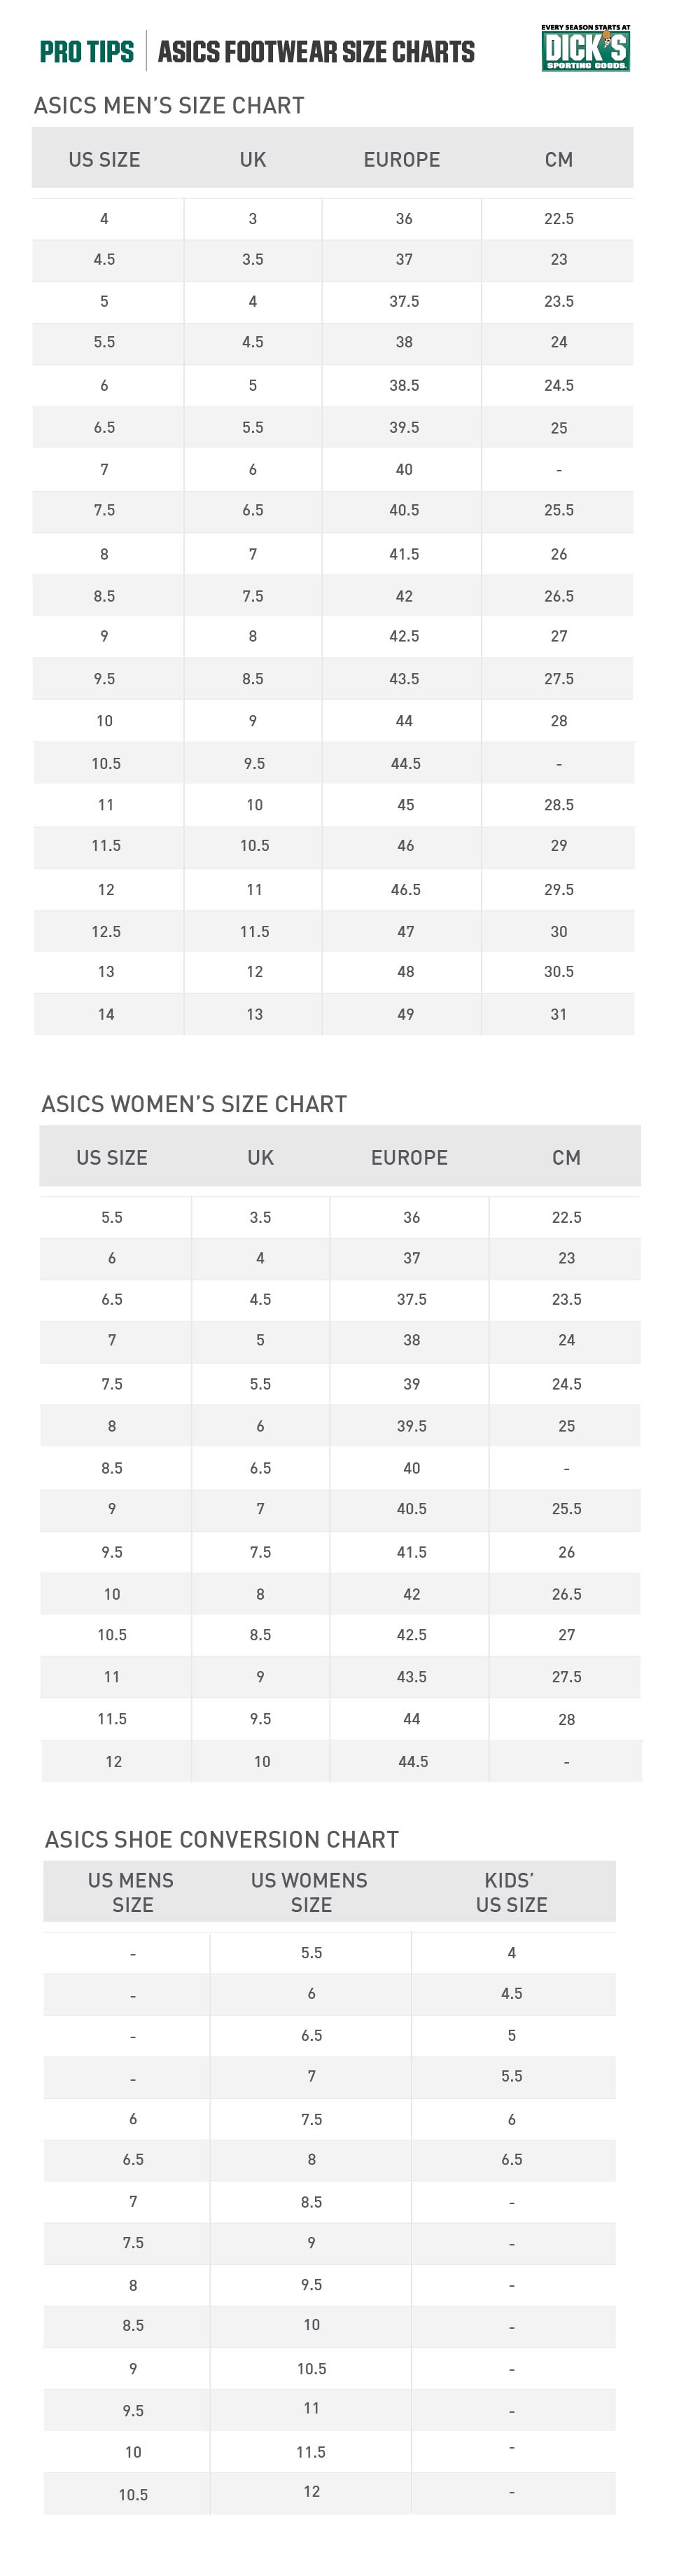 ASICS Footwear Size Chart | PRO TIPS by